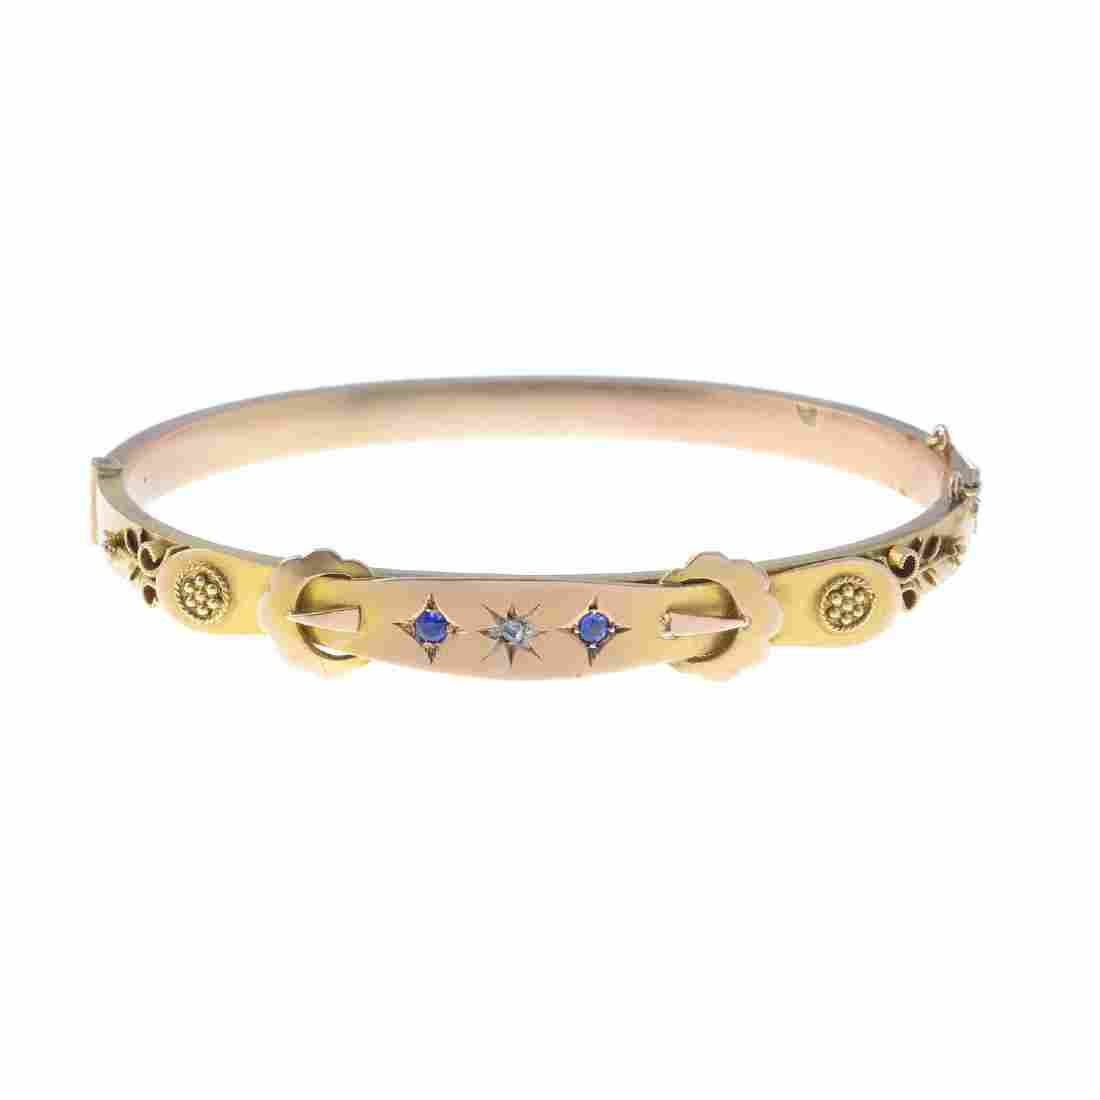 A late Victorian 9ct gold diamond and gem-set bangle.